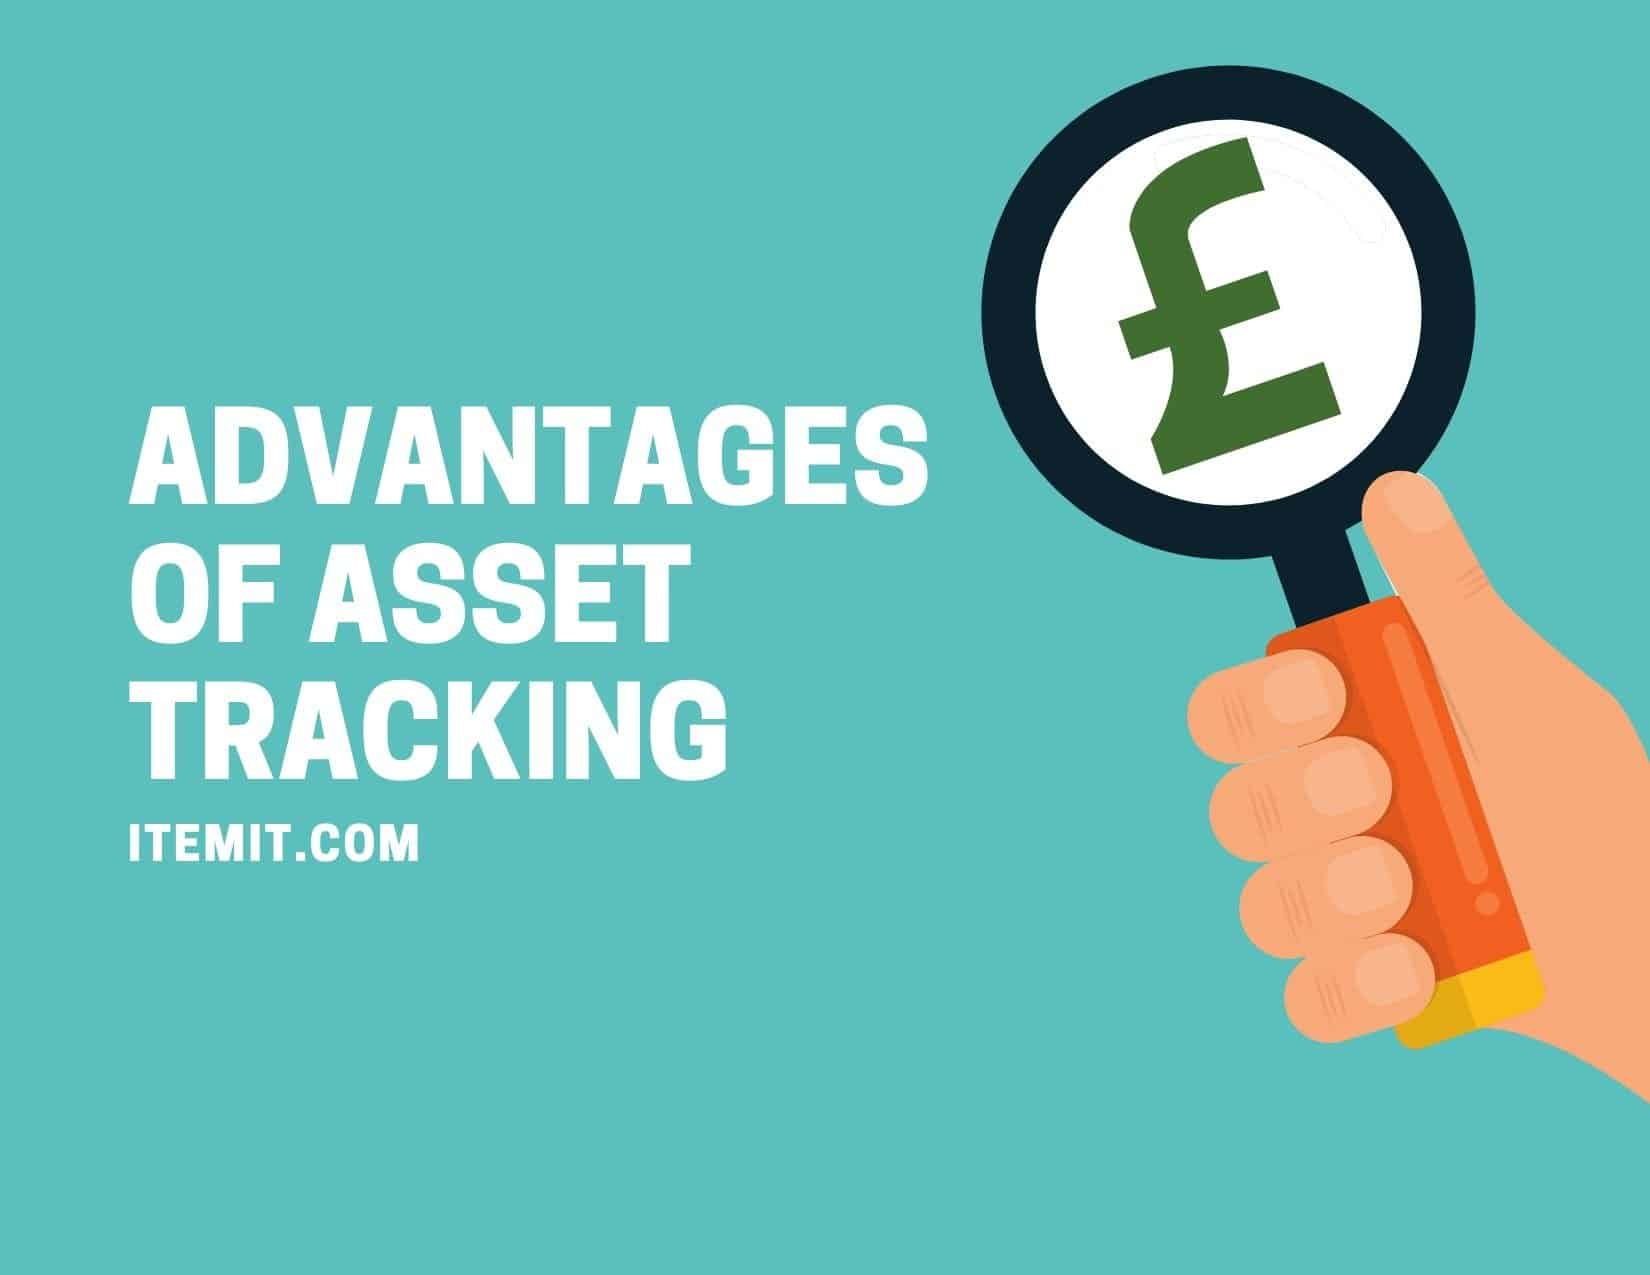 advantages of asset tracking software